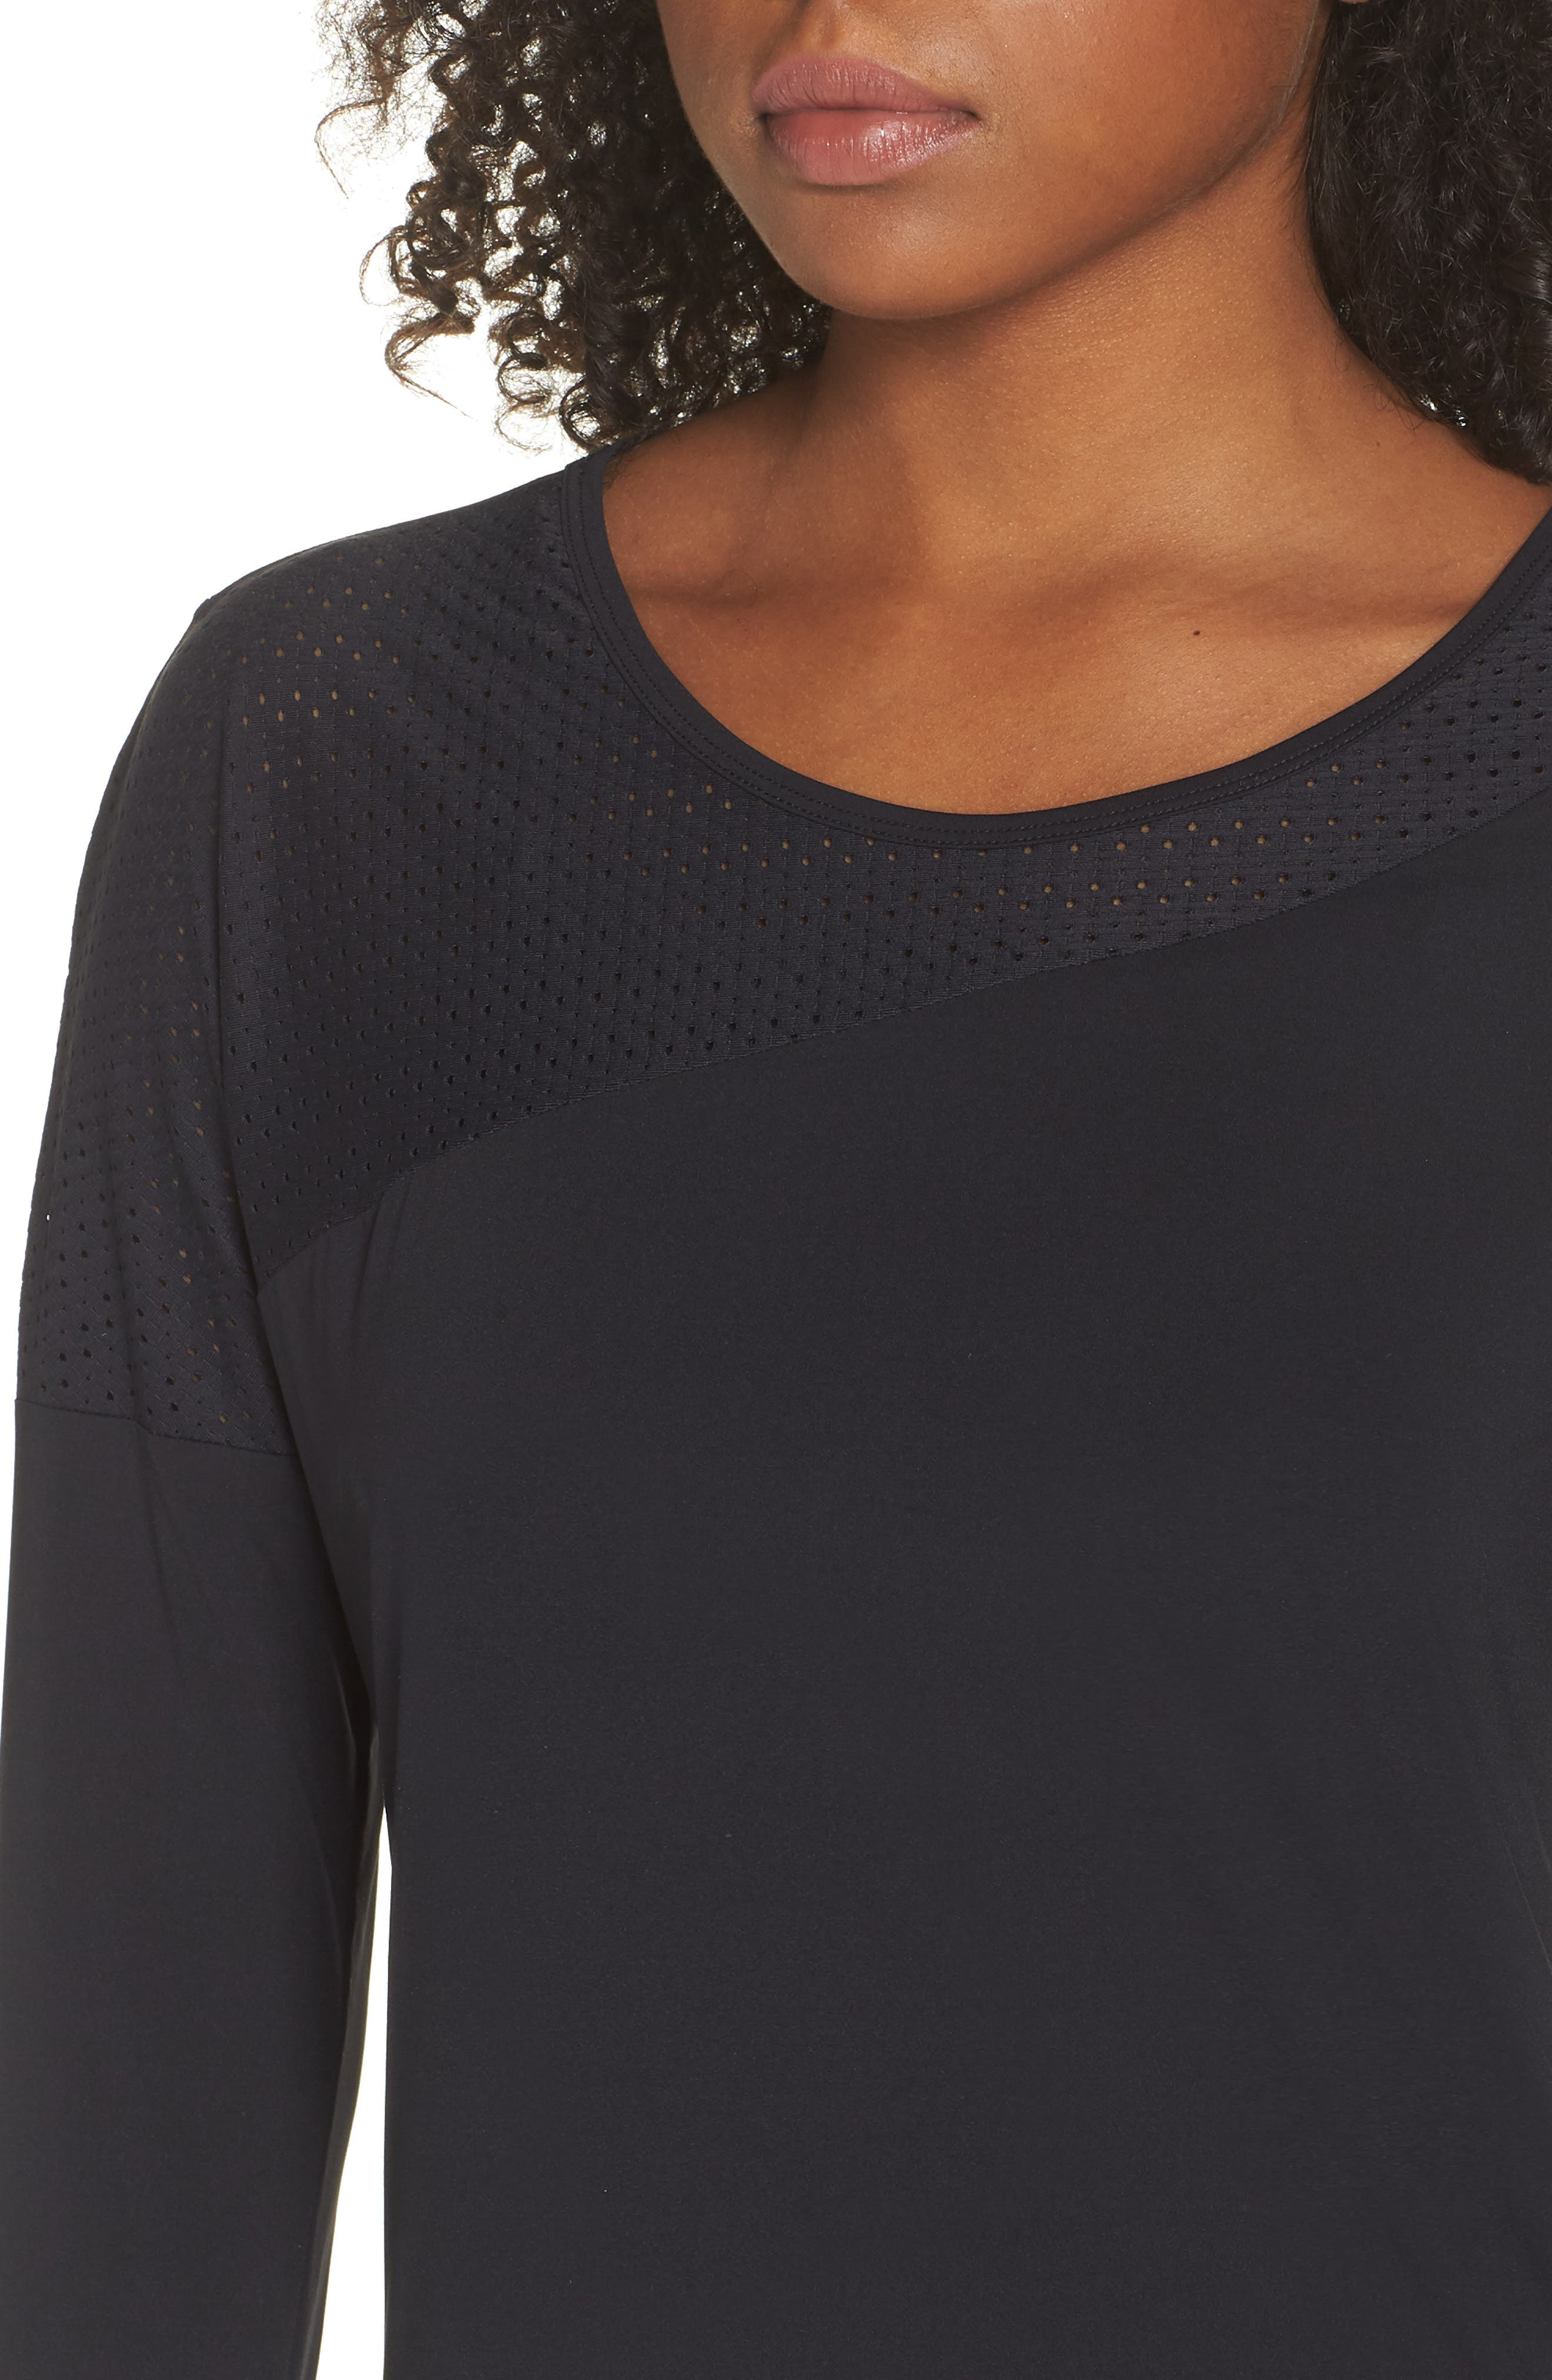 BoomBoom Athletica Easy Tunic,                             Alternate thumbnail 4, color,                             Black